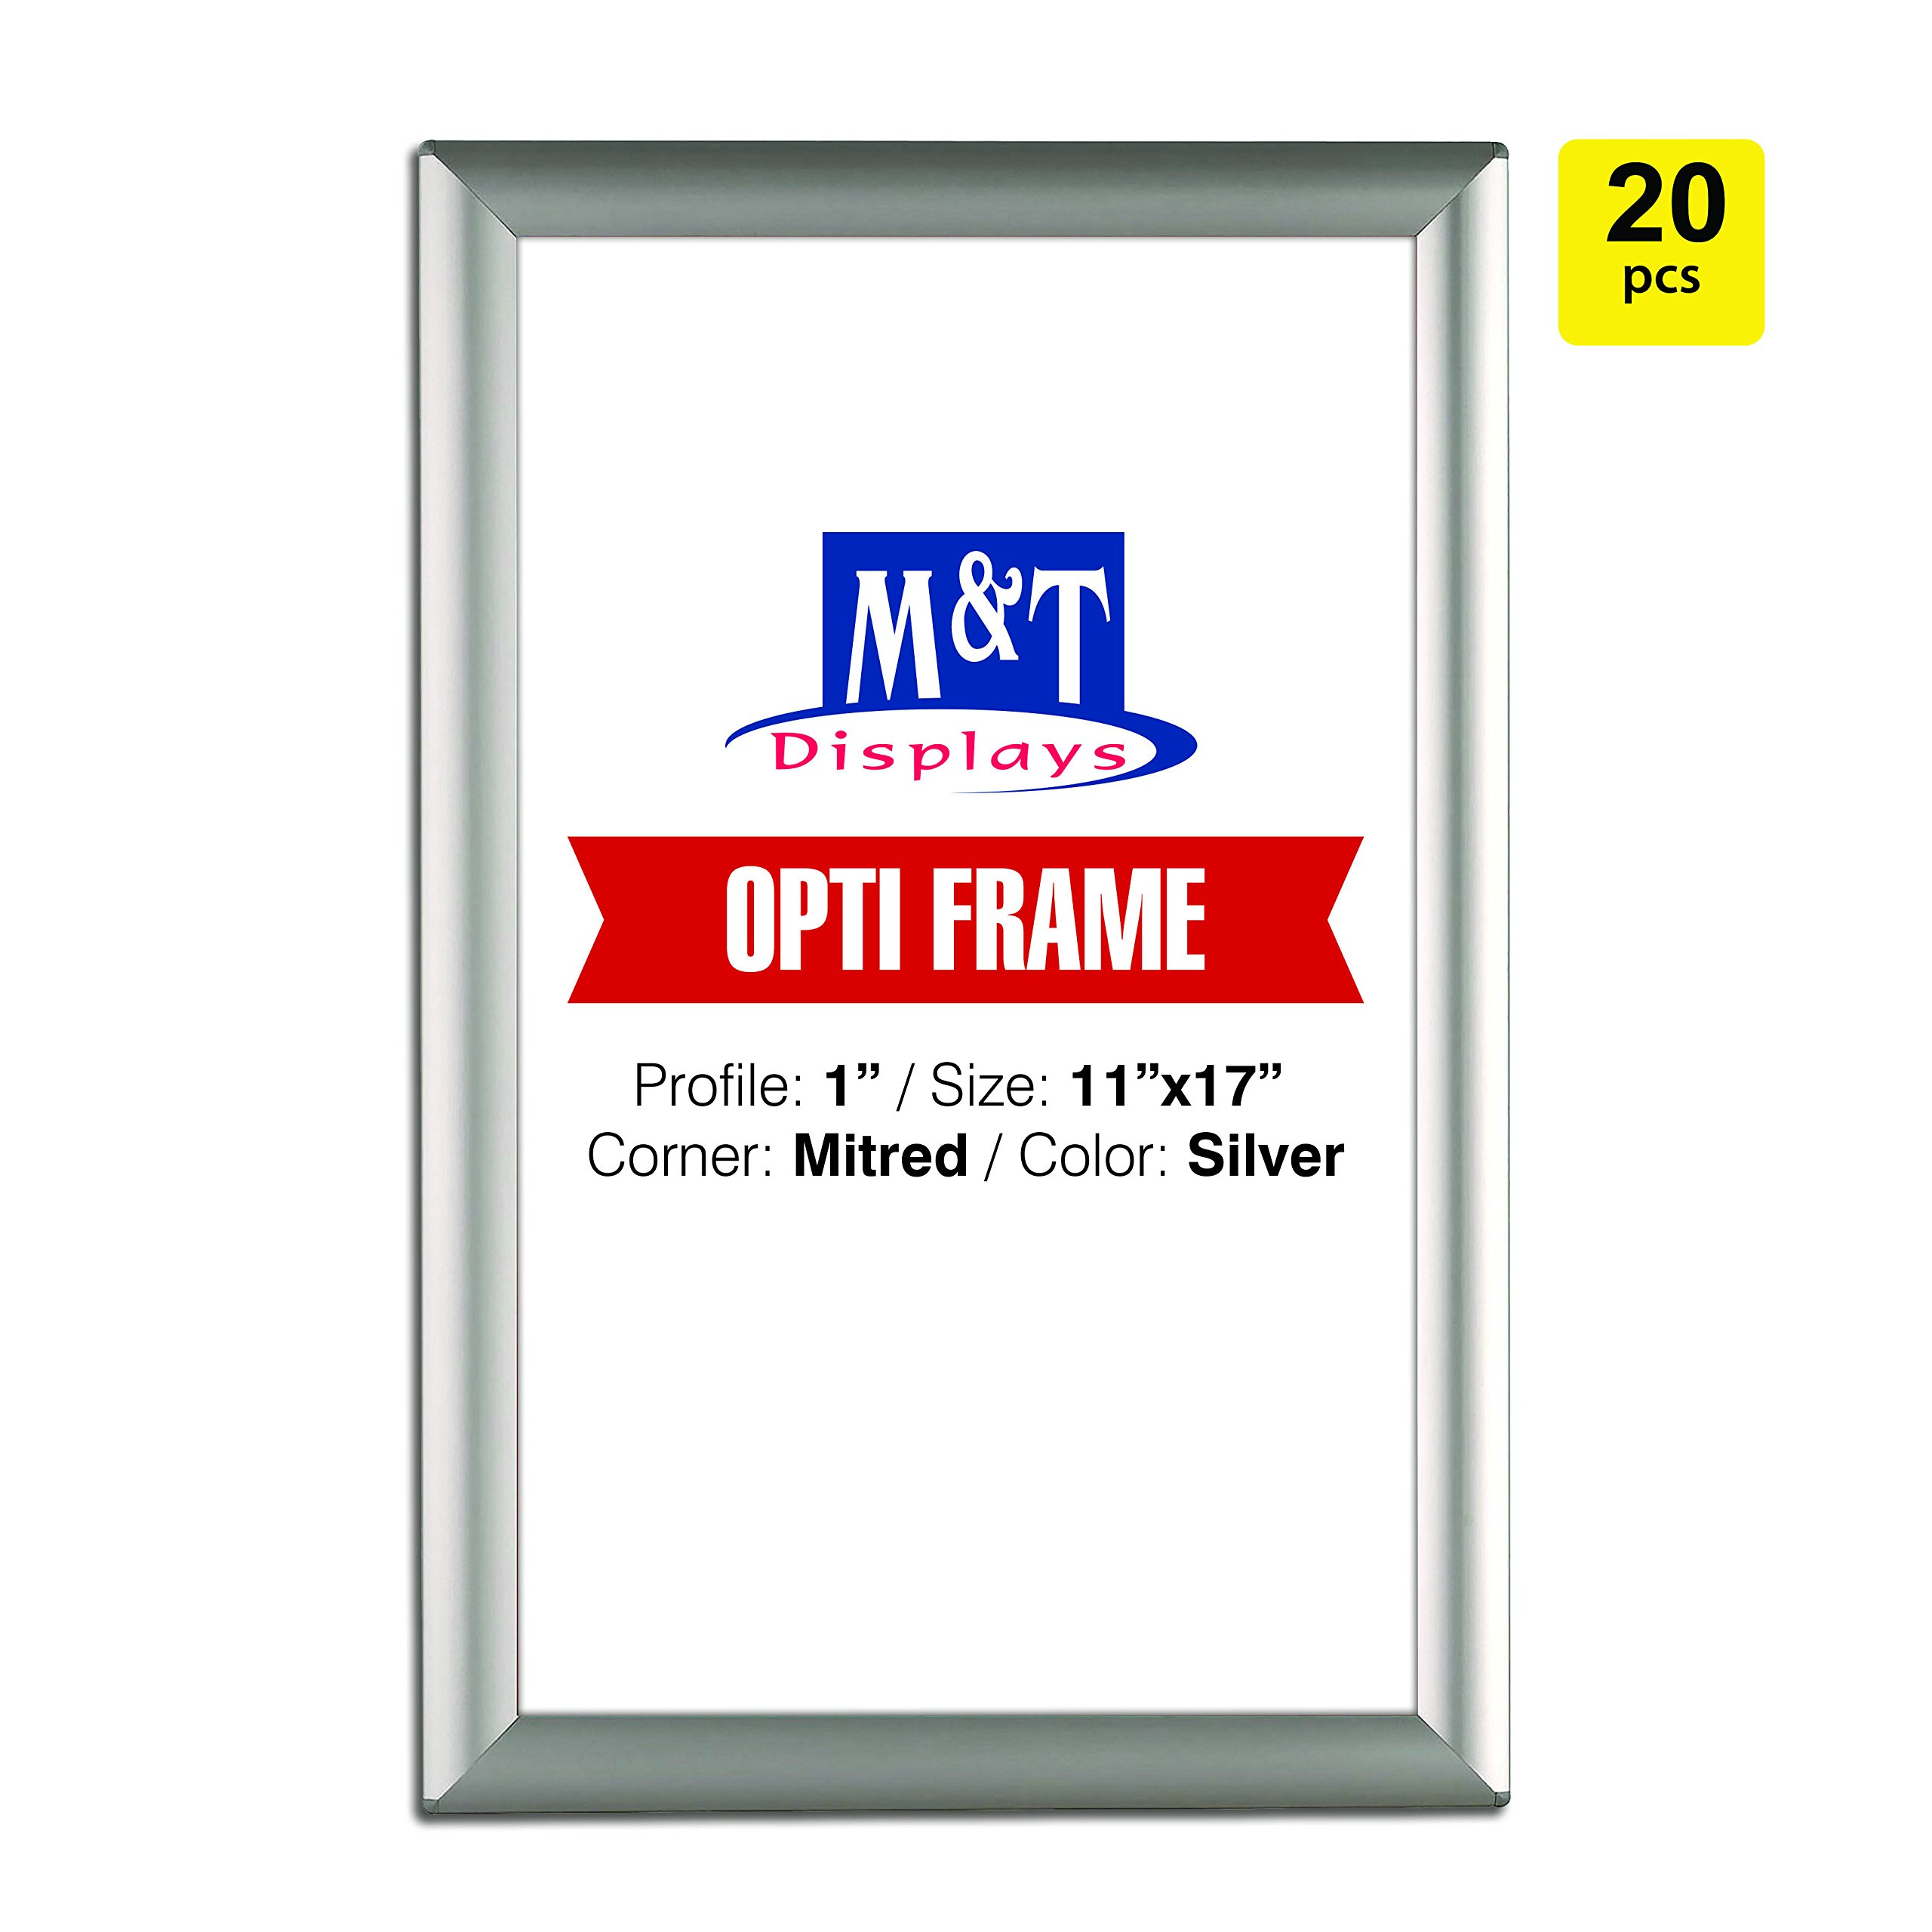 M&T Displays 11x17 Snap Frames, 1'' Profile, Opti Frame, Safe Corners, Wall Mounted - Silver / 20pcs / $9.95 Each